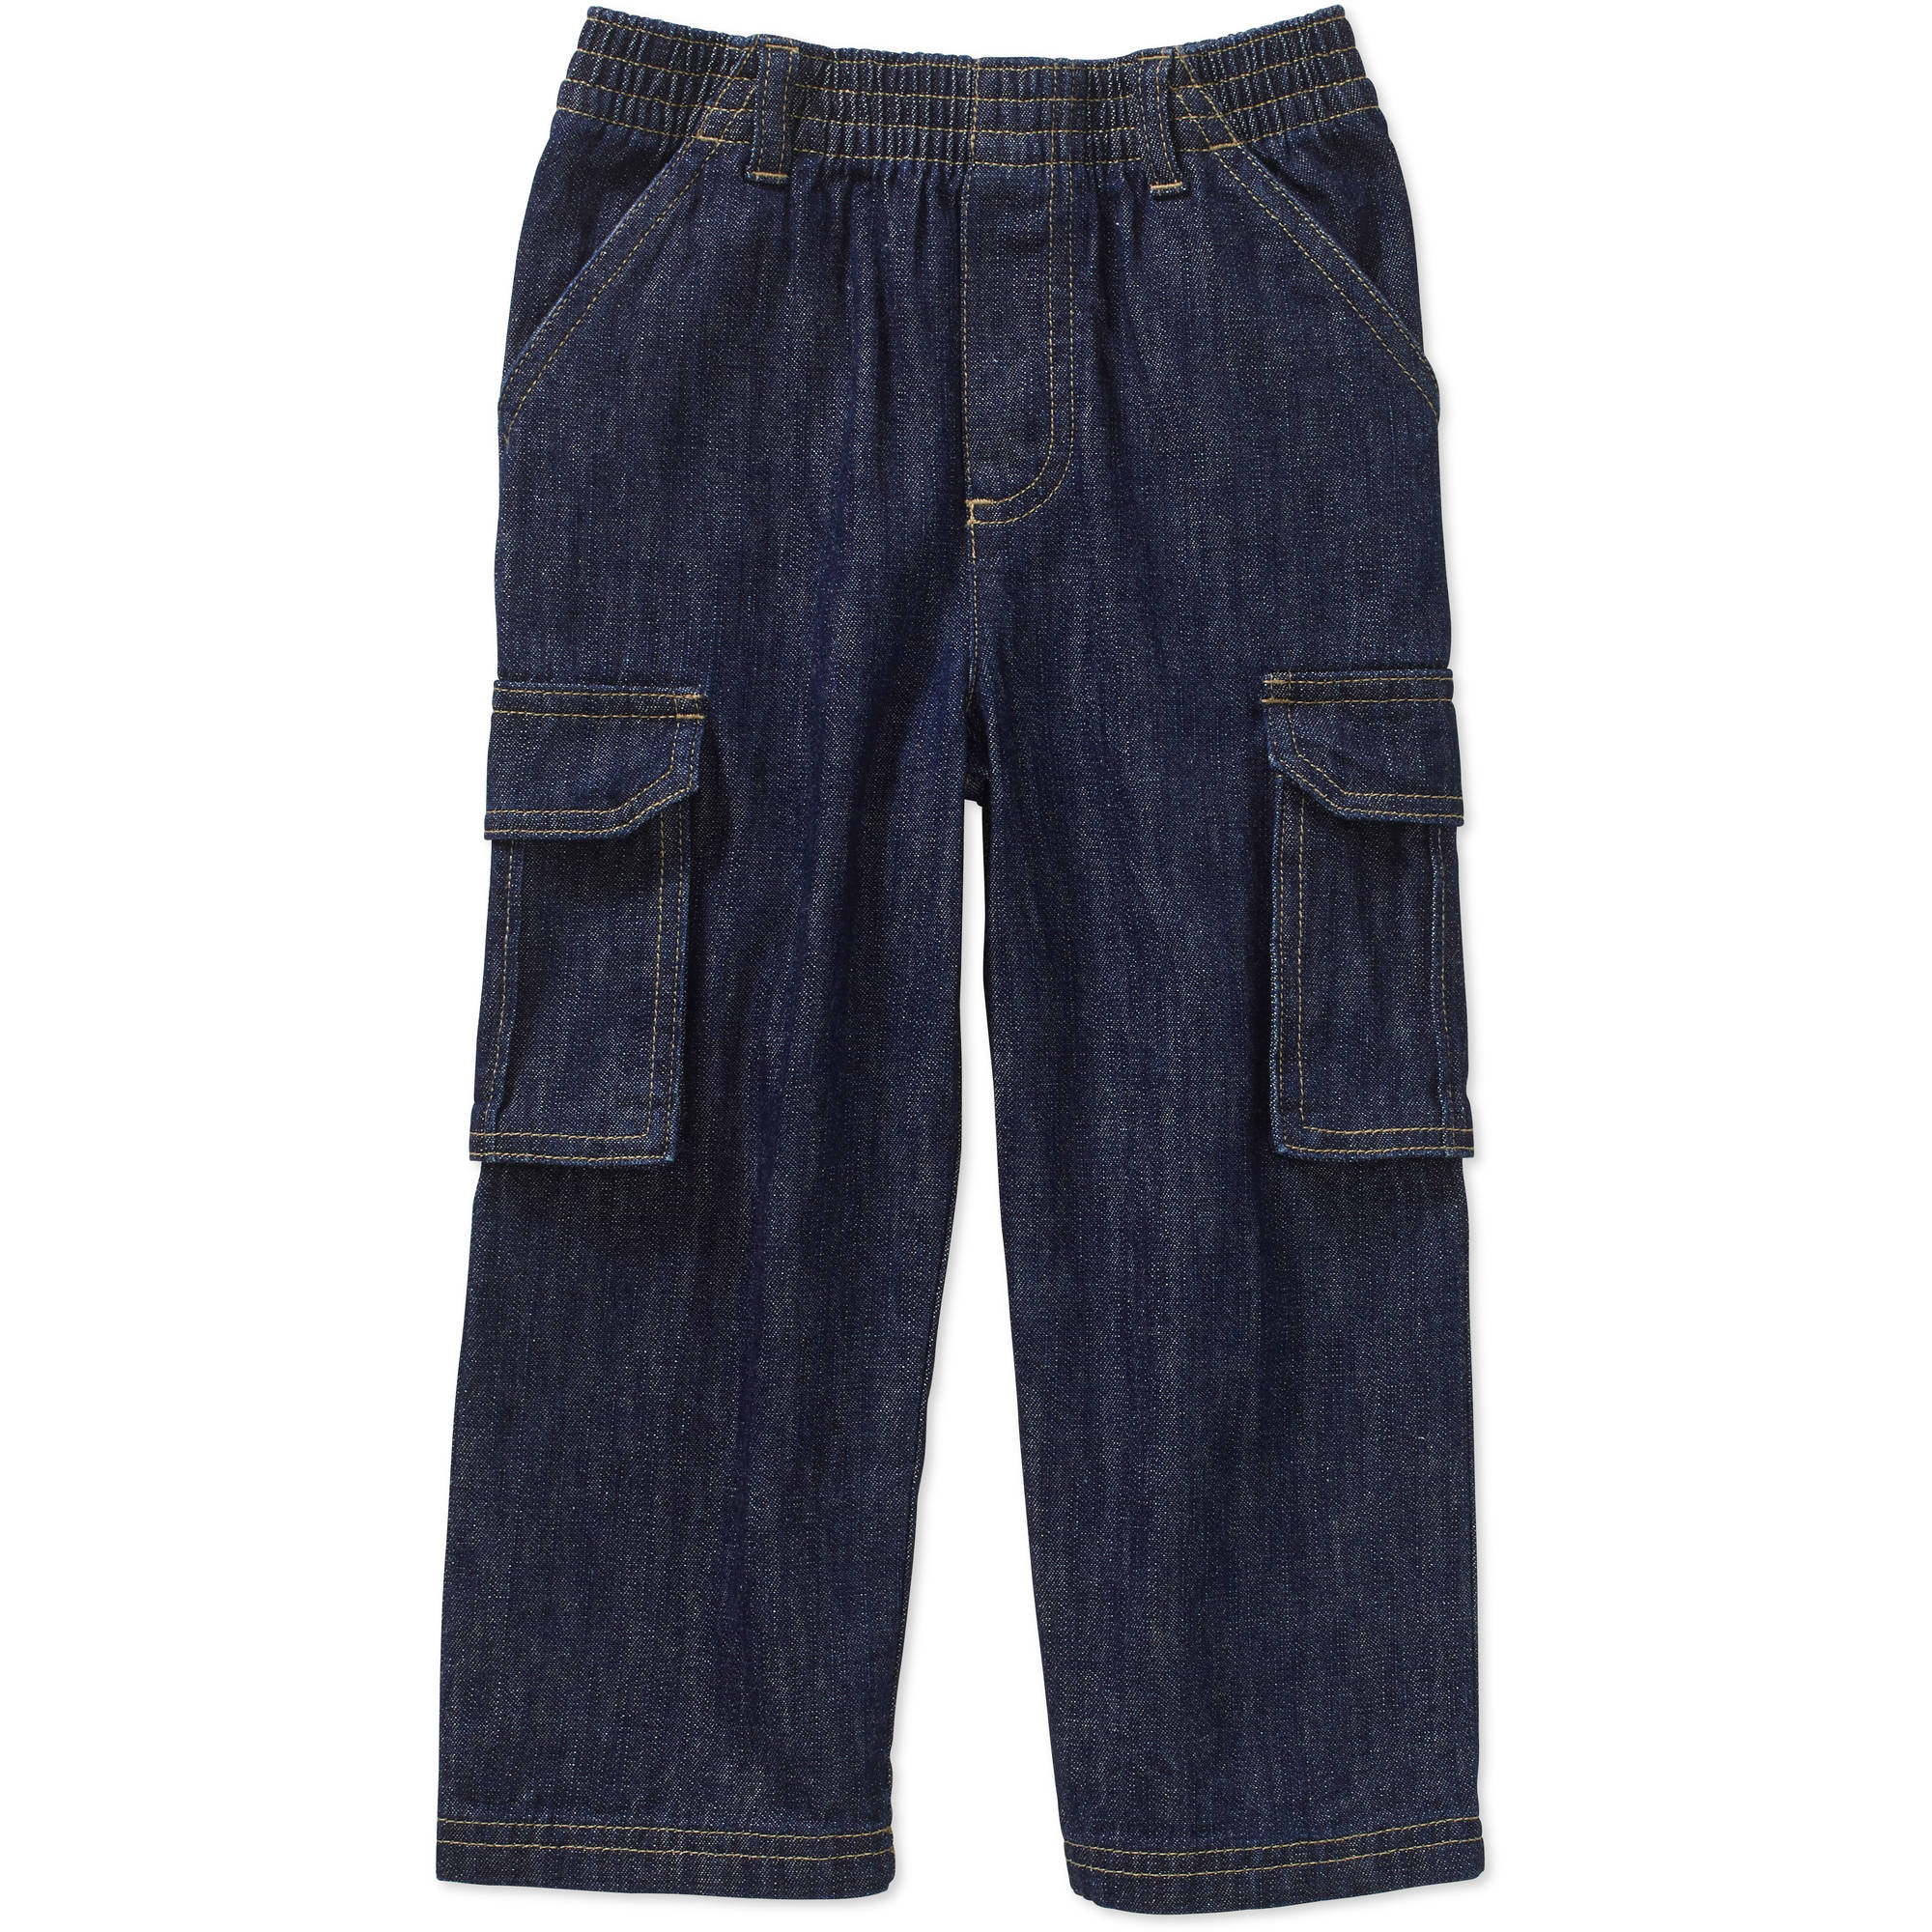 Garanimals Baby Toddler Boy Denim Jeans Pants